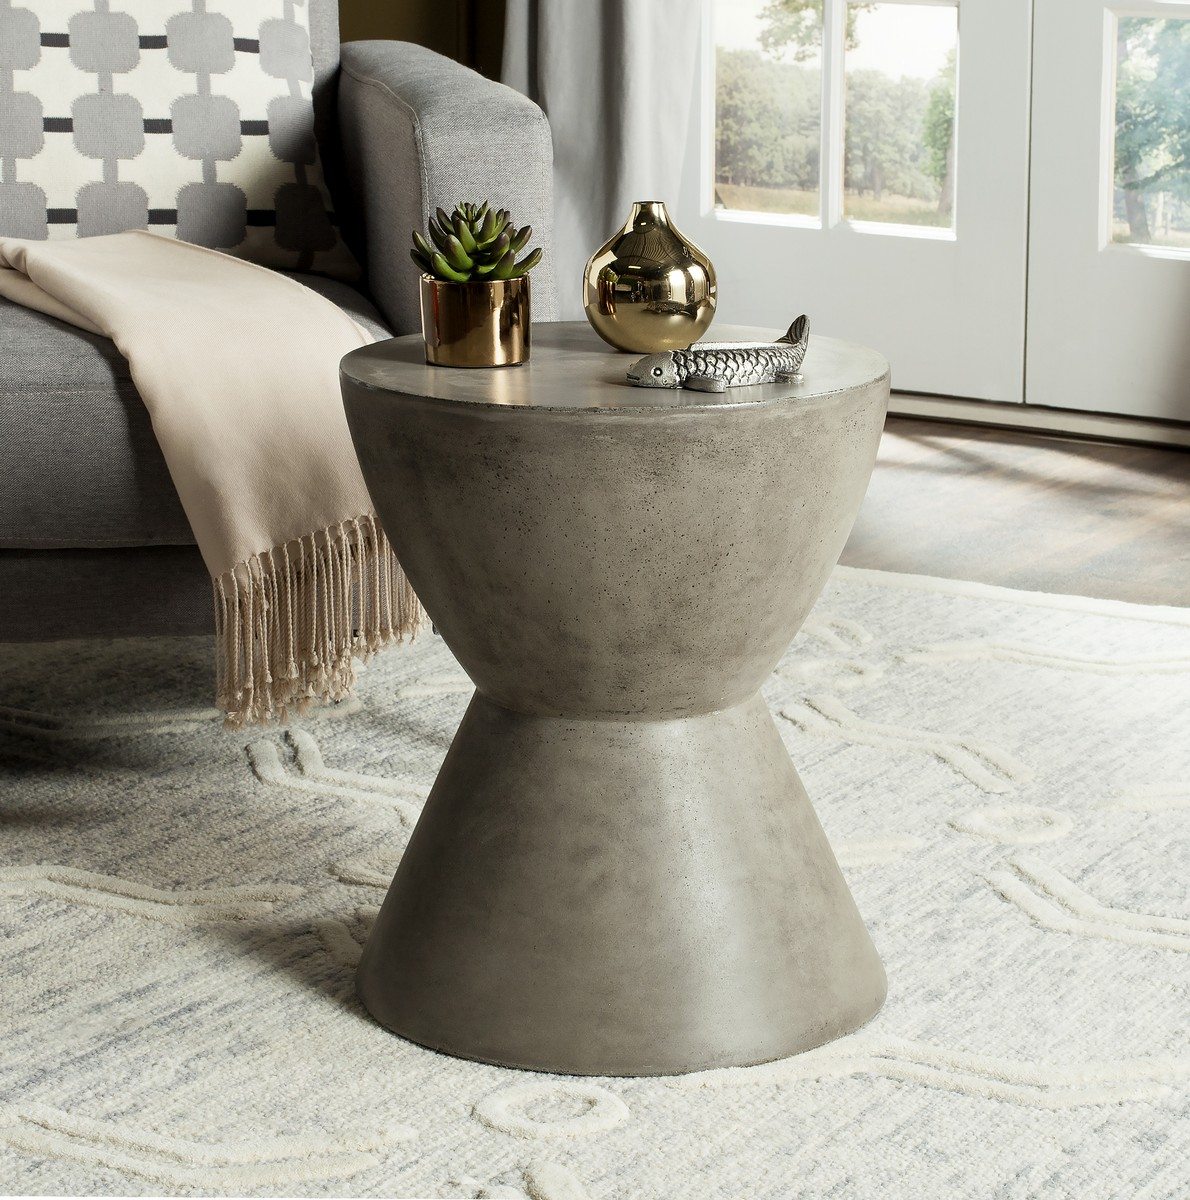 accent tables patio furniture safavieh table modern silver gray share this product rustic metal legs repurposed wood target rose gold side ashley white marble living room mini